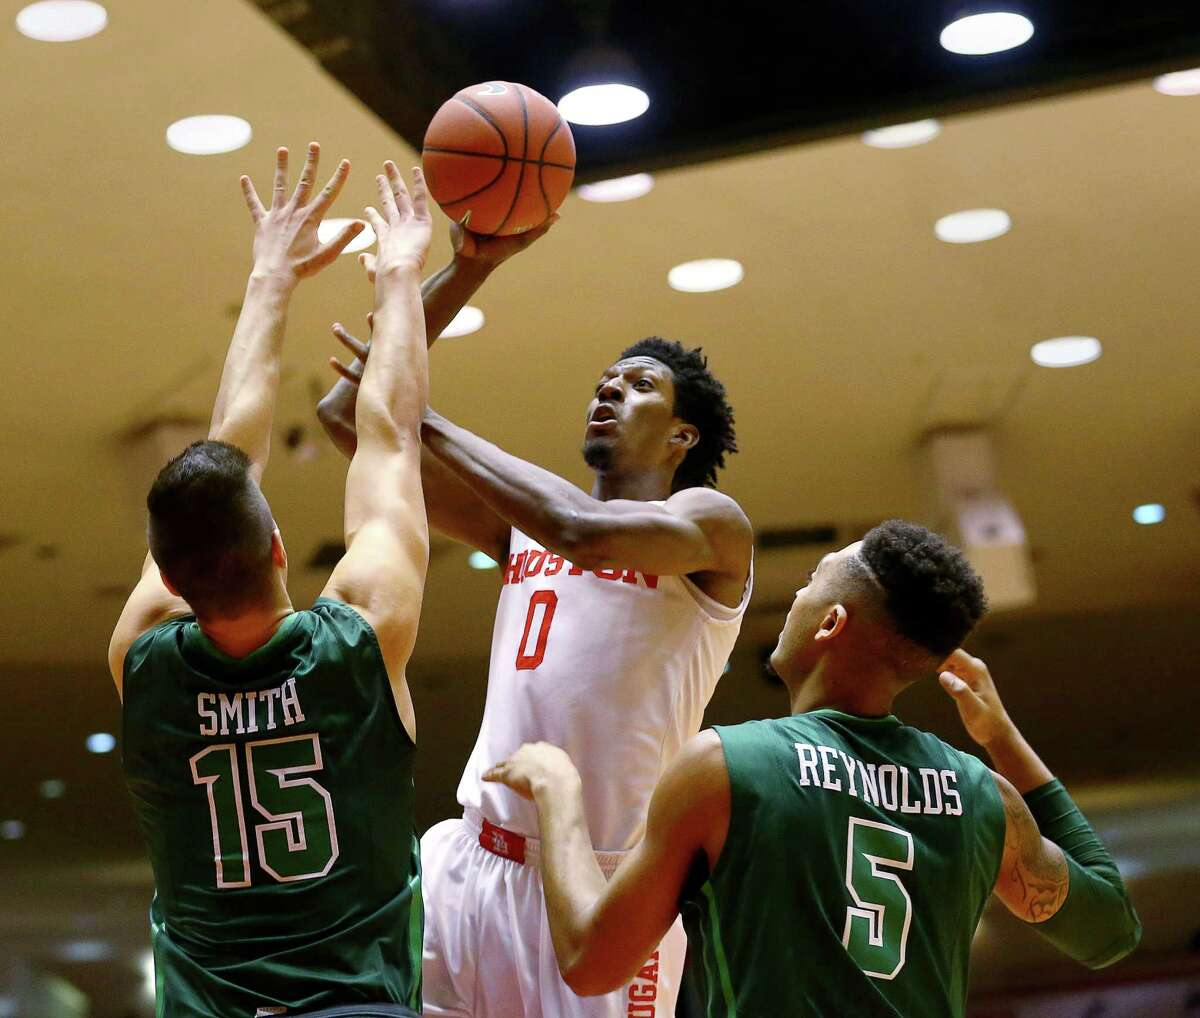 Houston Cougars forward Danrad Knowles (0) shoots over Tulane Green Wave center Ryan Smith (15) and guard Cameron Reynolds (5) during the first half of an NCAA basketball game at Hofheinz Pavillion, Tuesday, Jan. 24, 2017, in Houston.